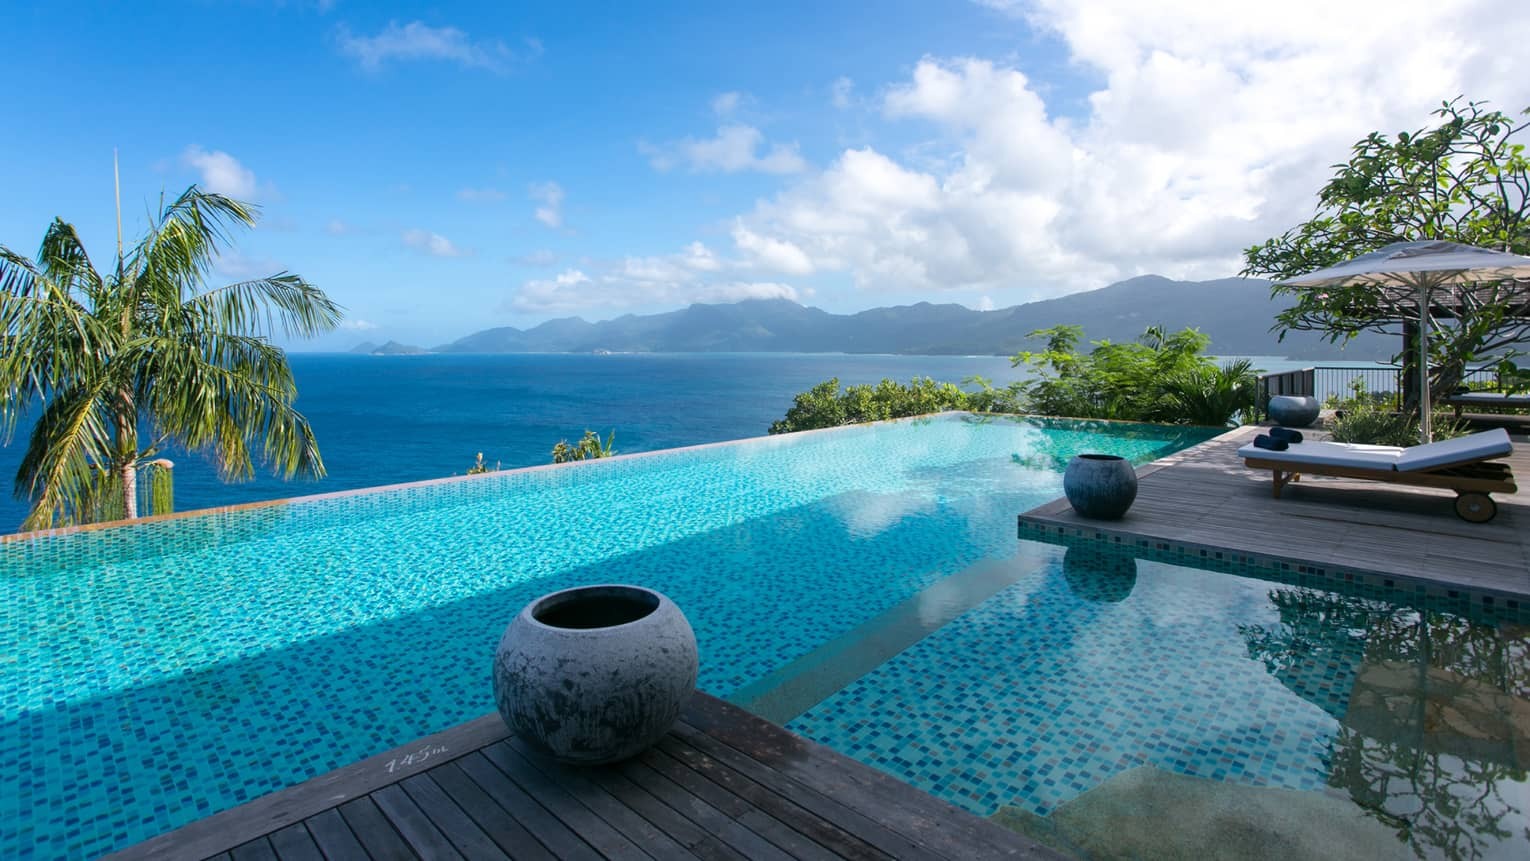 Six-Bedroom Residence Villa infinity pool beside top of palm tree, ocean view below